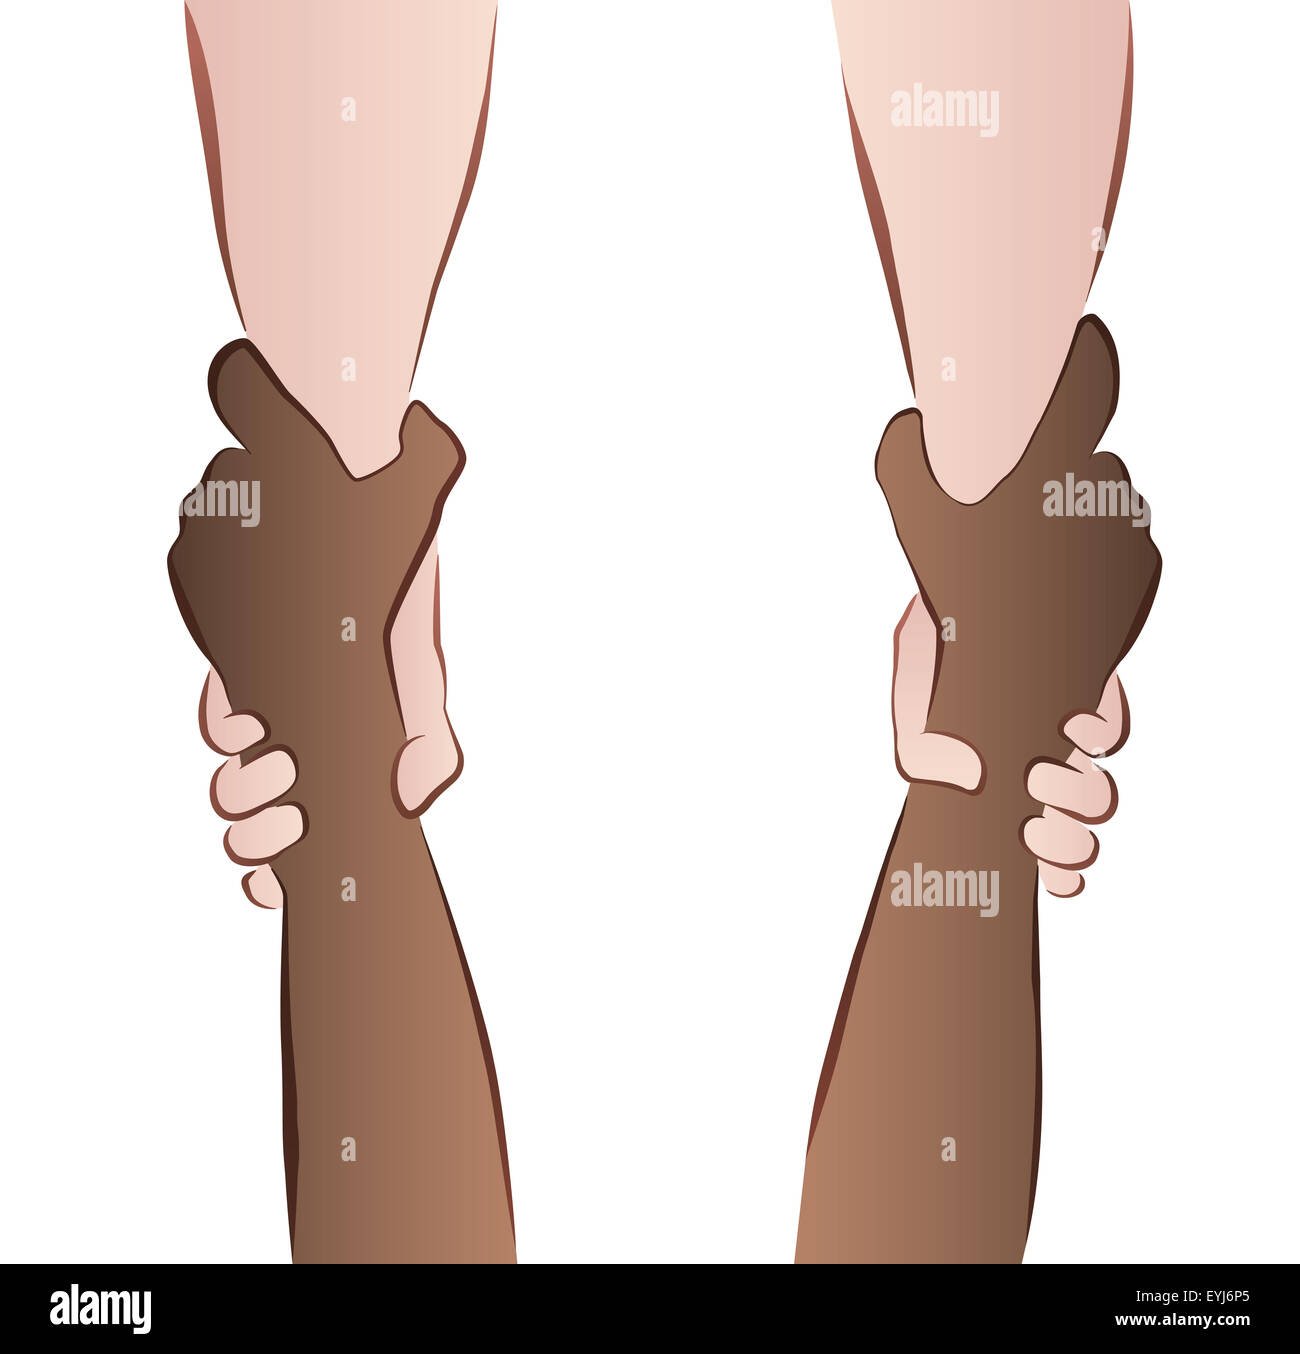 Interracial cooperation - saving hands - rescue grip. Illustration on white background. - Stock Image